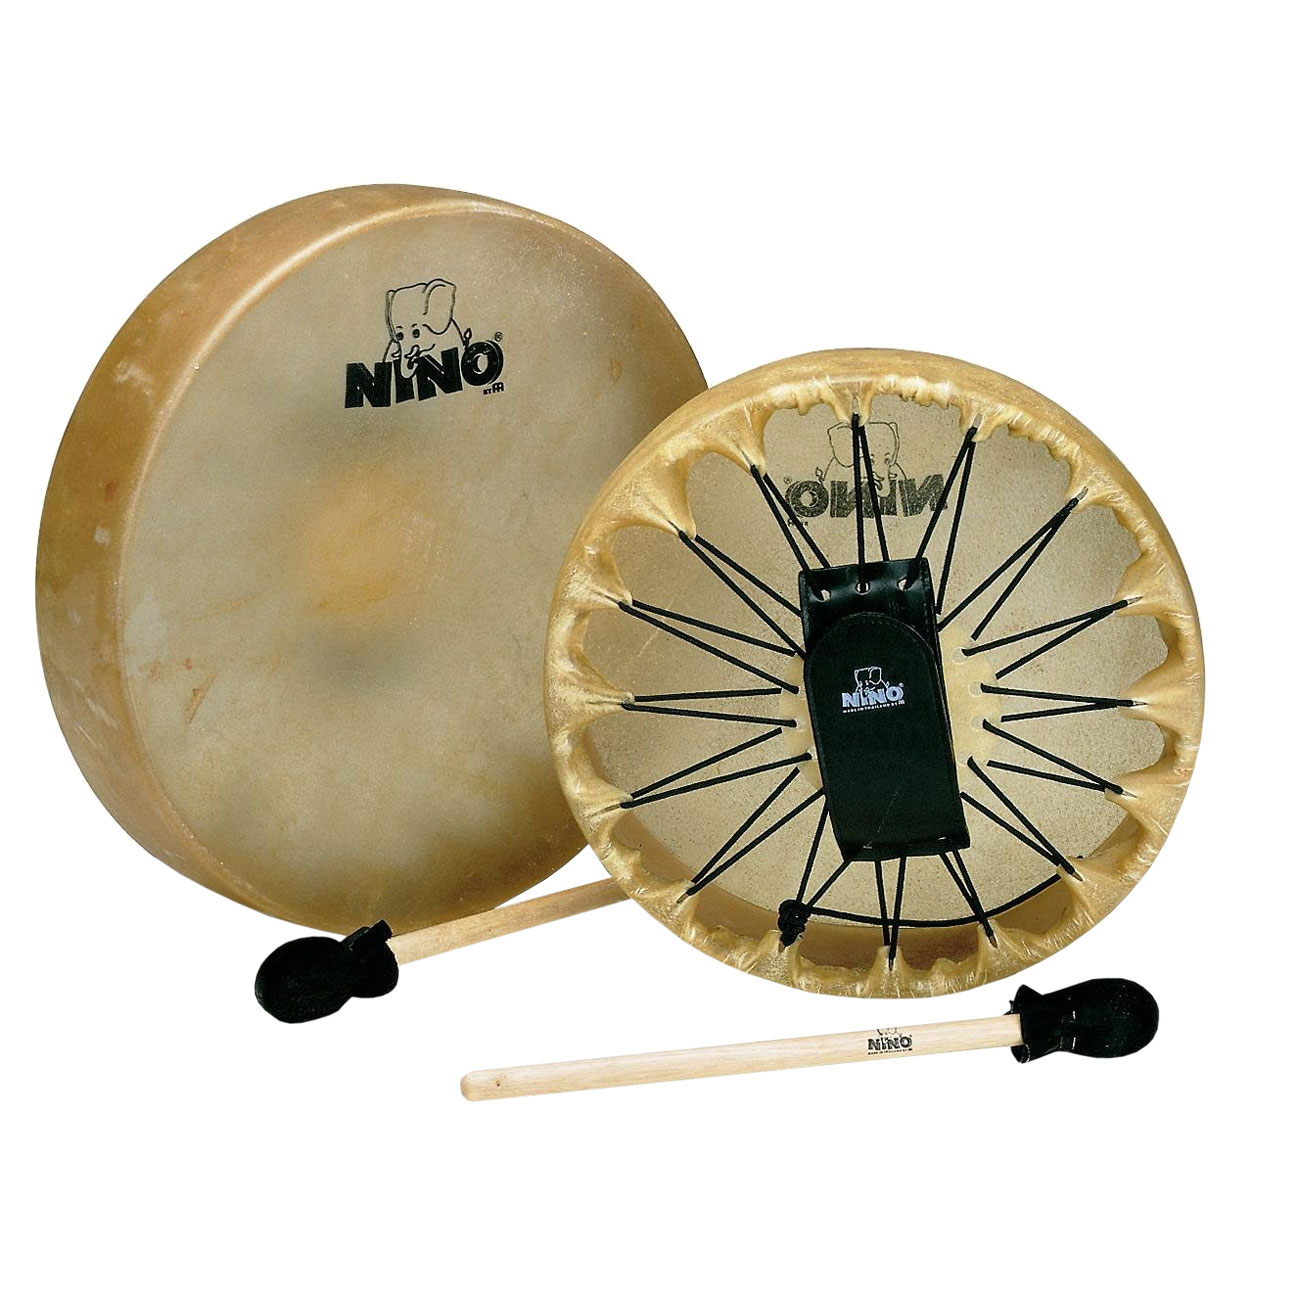 "Meinl Nino 12.5"" Frame Drum with Mallet"